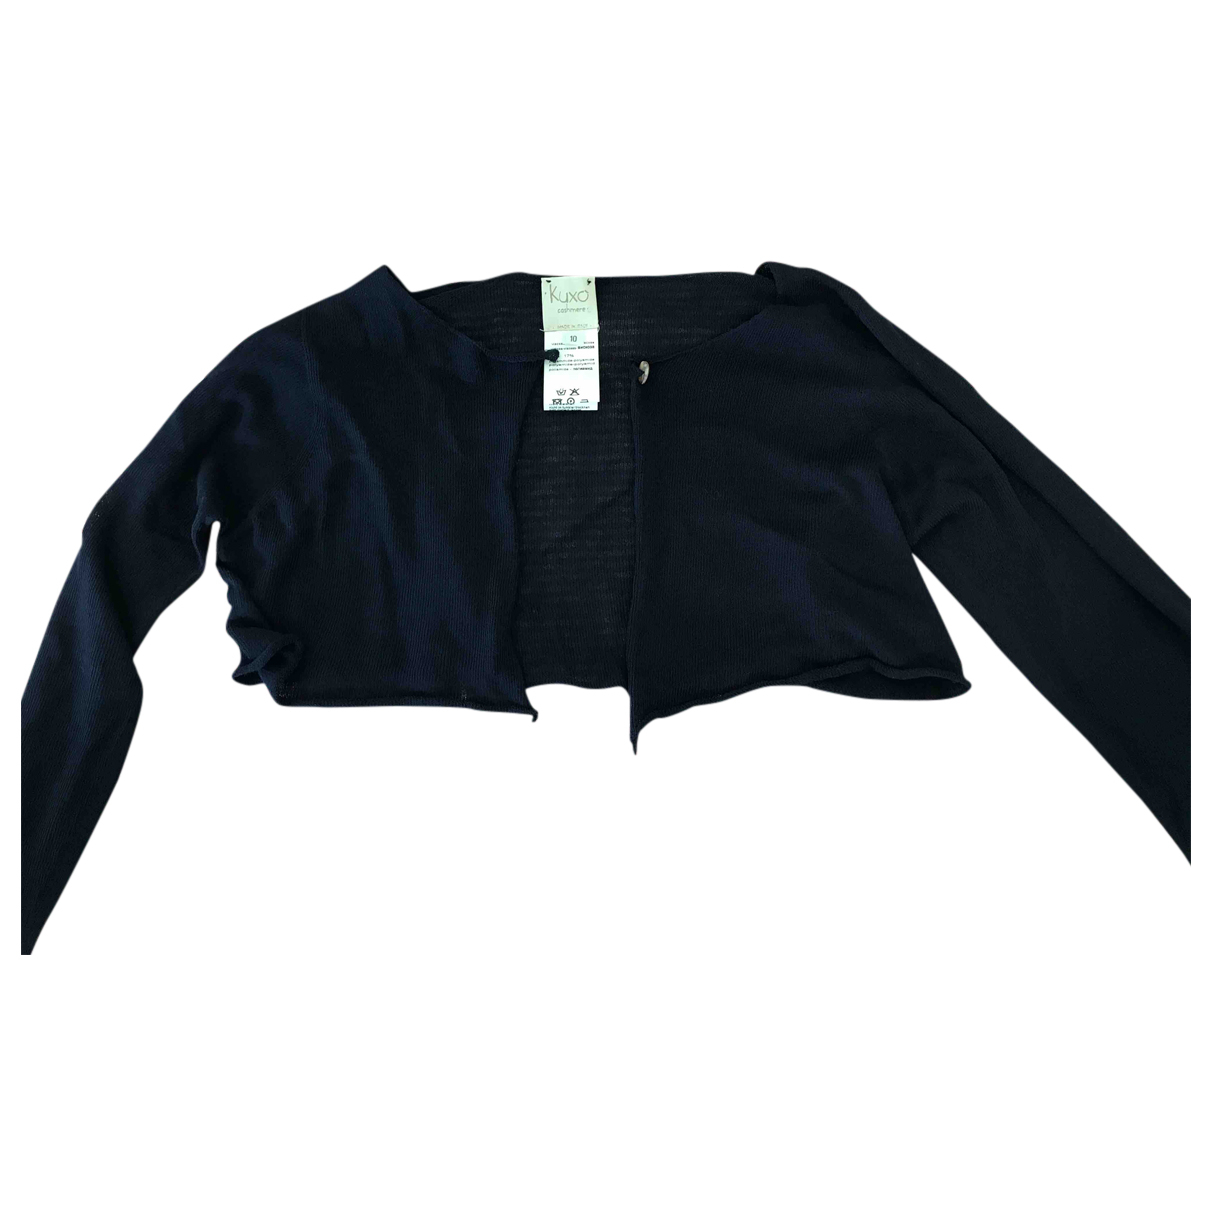 Autre Marque N Blue Knitwear for Kids 10 years - up to 142cm FR